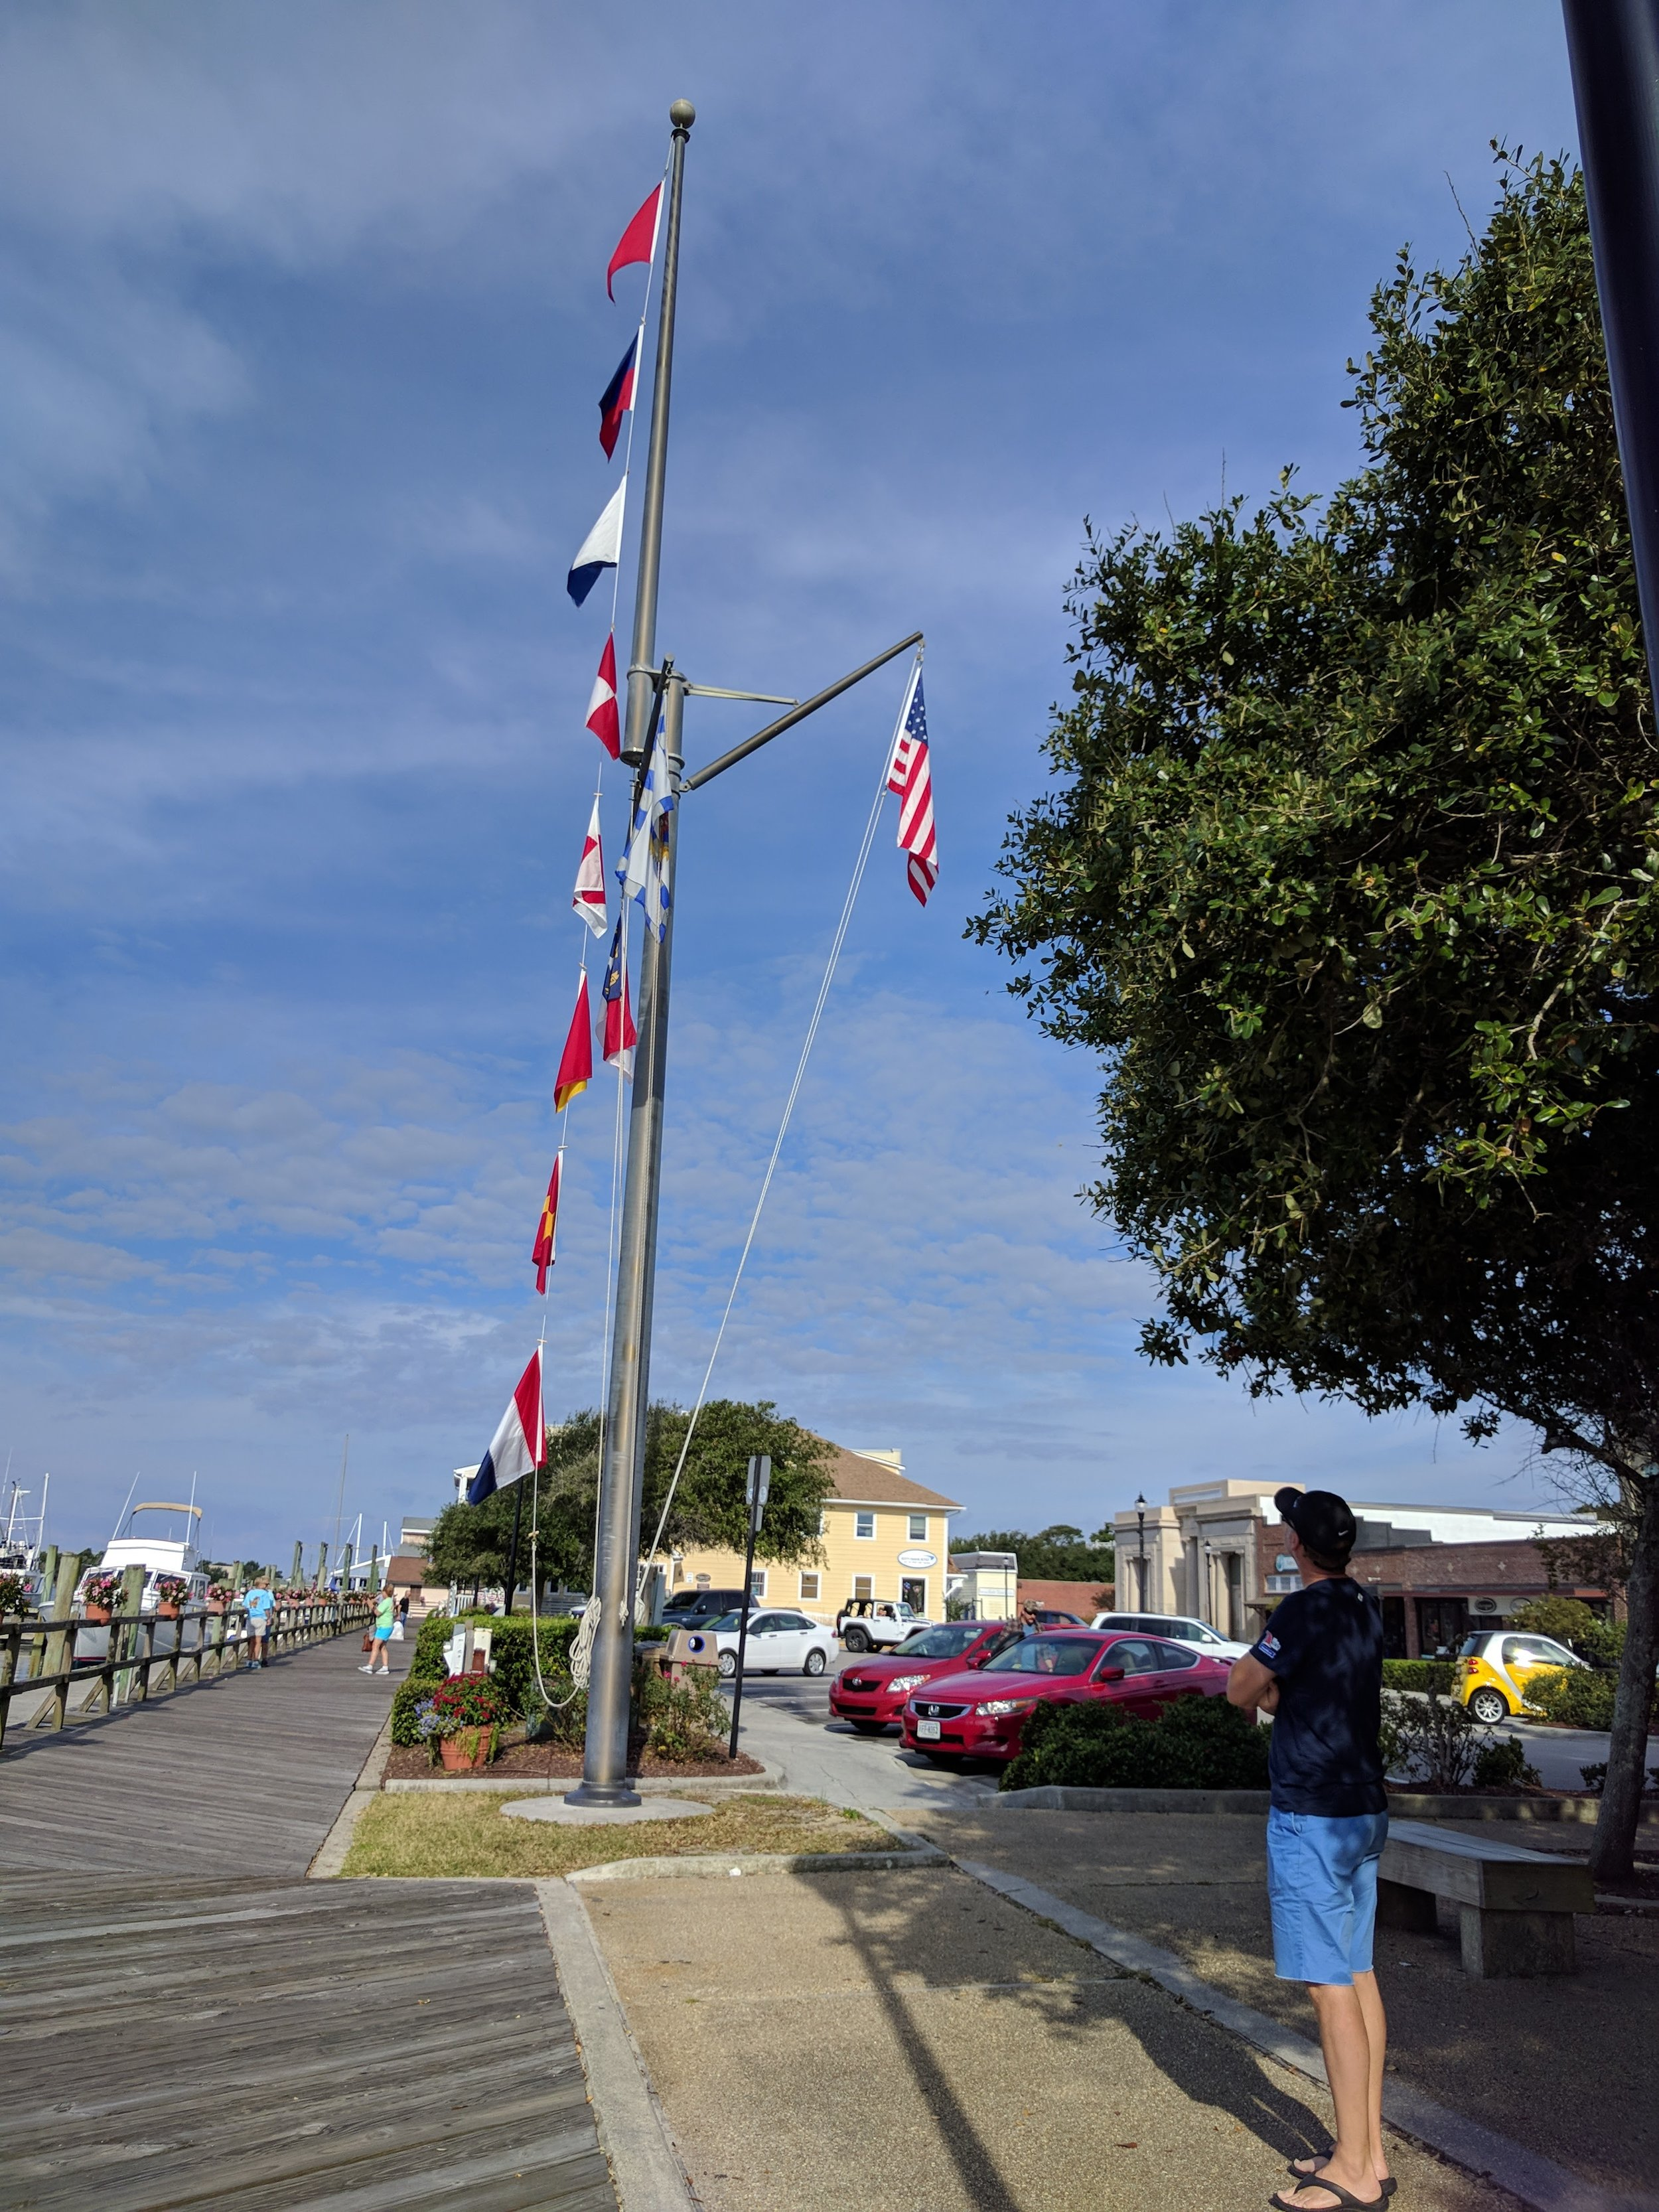 The nautical flags spell 'Beaufort'.